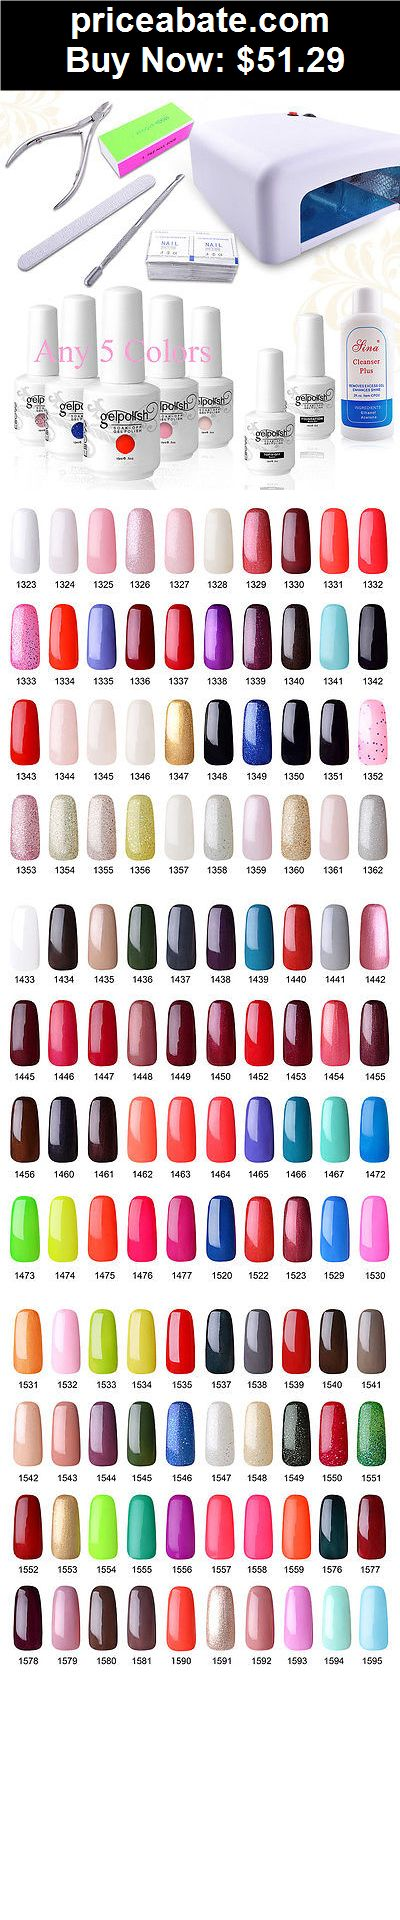 nails: Pick 5 Colours Soak Off Gel Nail Polish Top Base Coat 36W UV Lamp Manicure Kits - BUY IT NOW ONLY $51.29